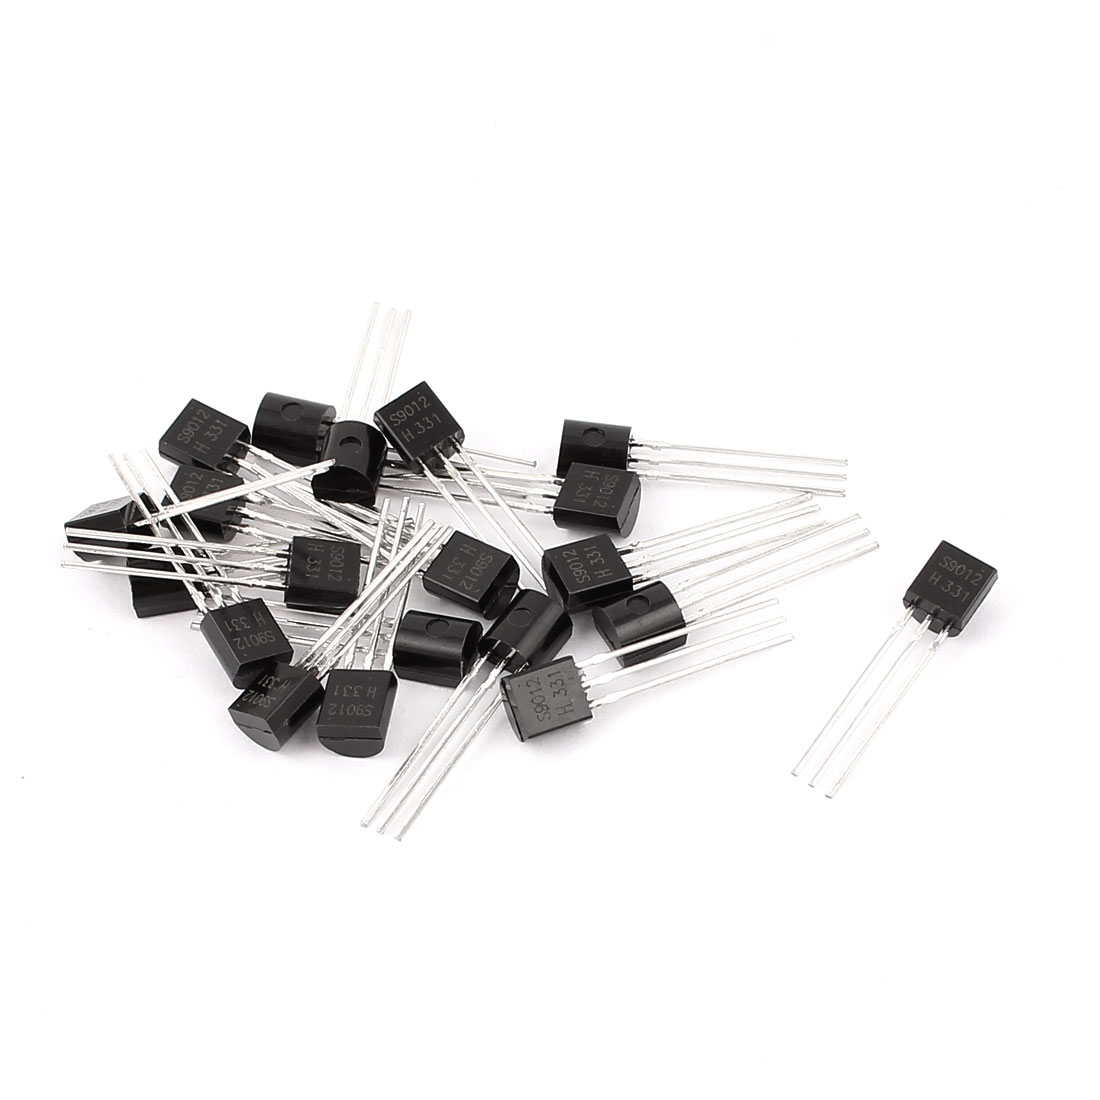 20 Pcs S9012 TO-92 PNP Bipolar Low Power Junction Transistors 40V 0.5A